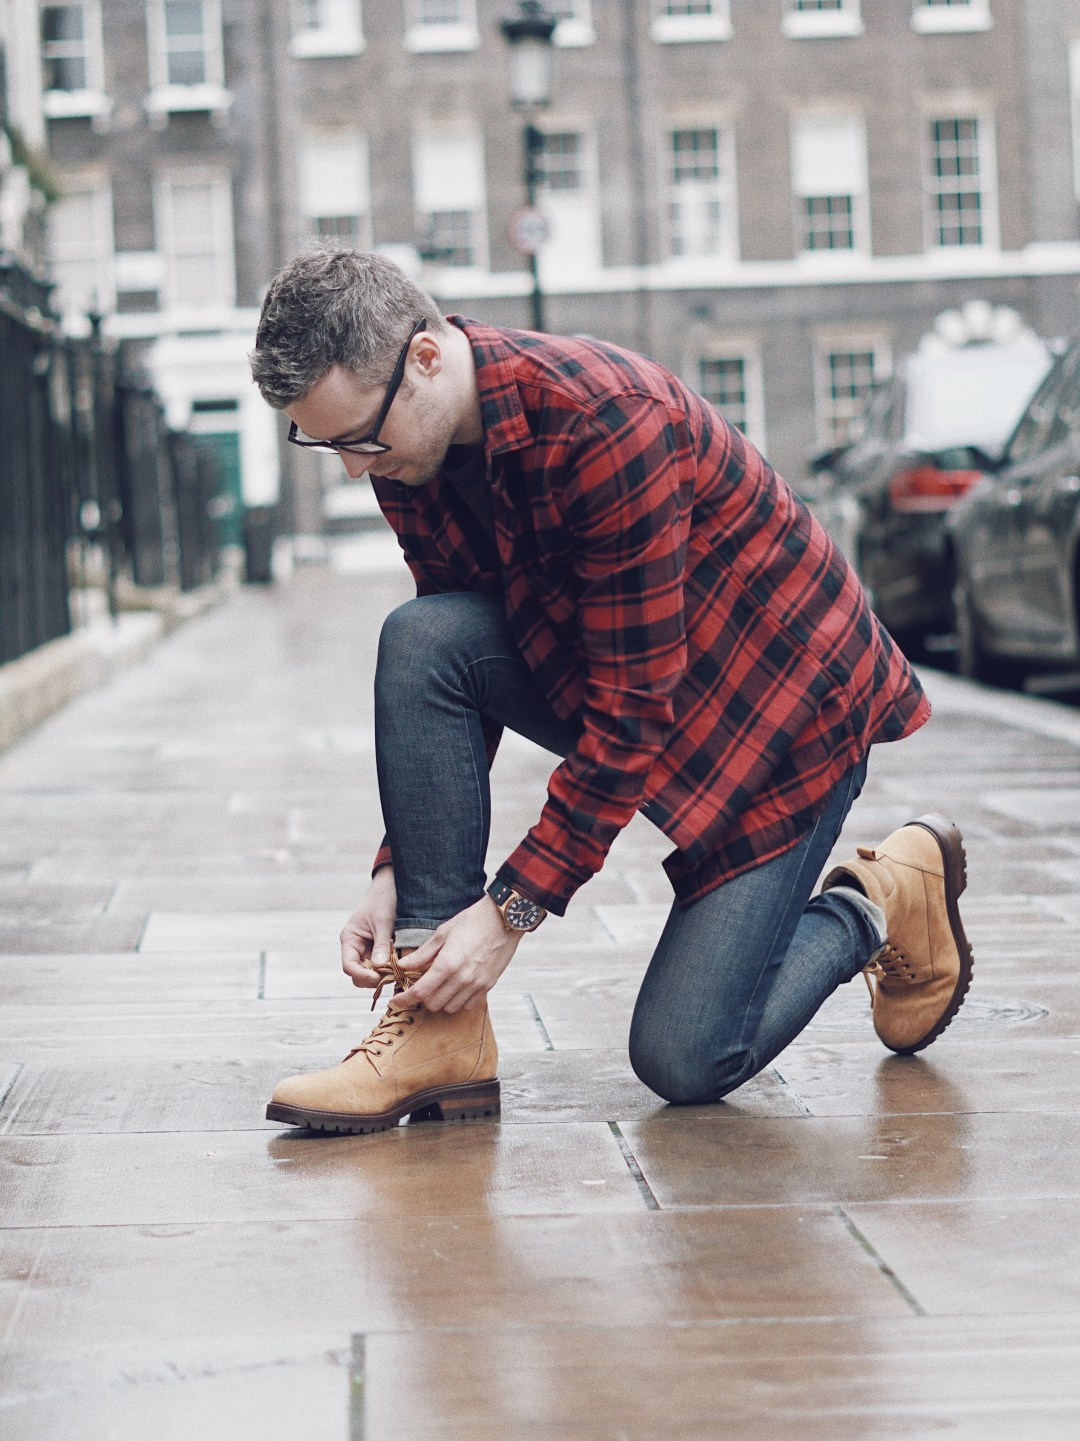 Boots from Zara | Buffalo Check Flannel Shirt and Skinny Jeans from H&M | Watch from TW Steel